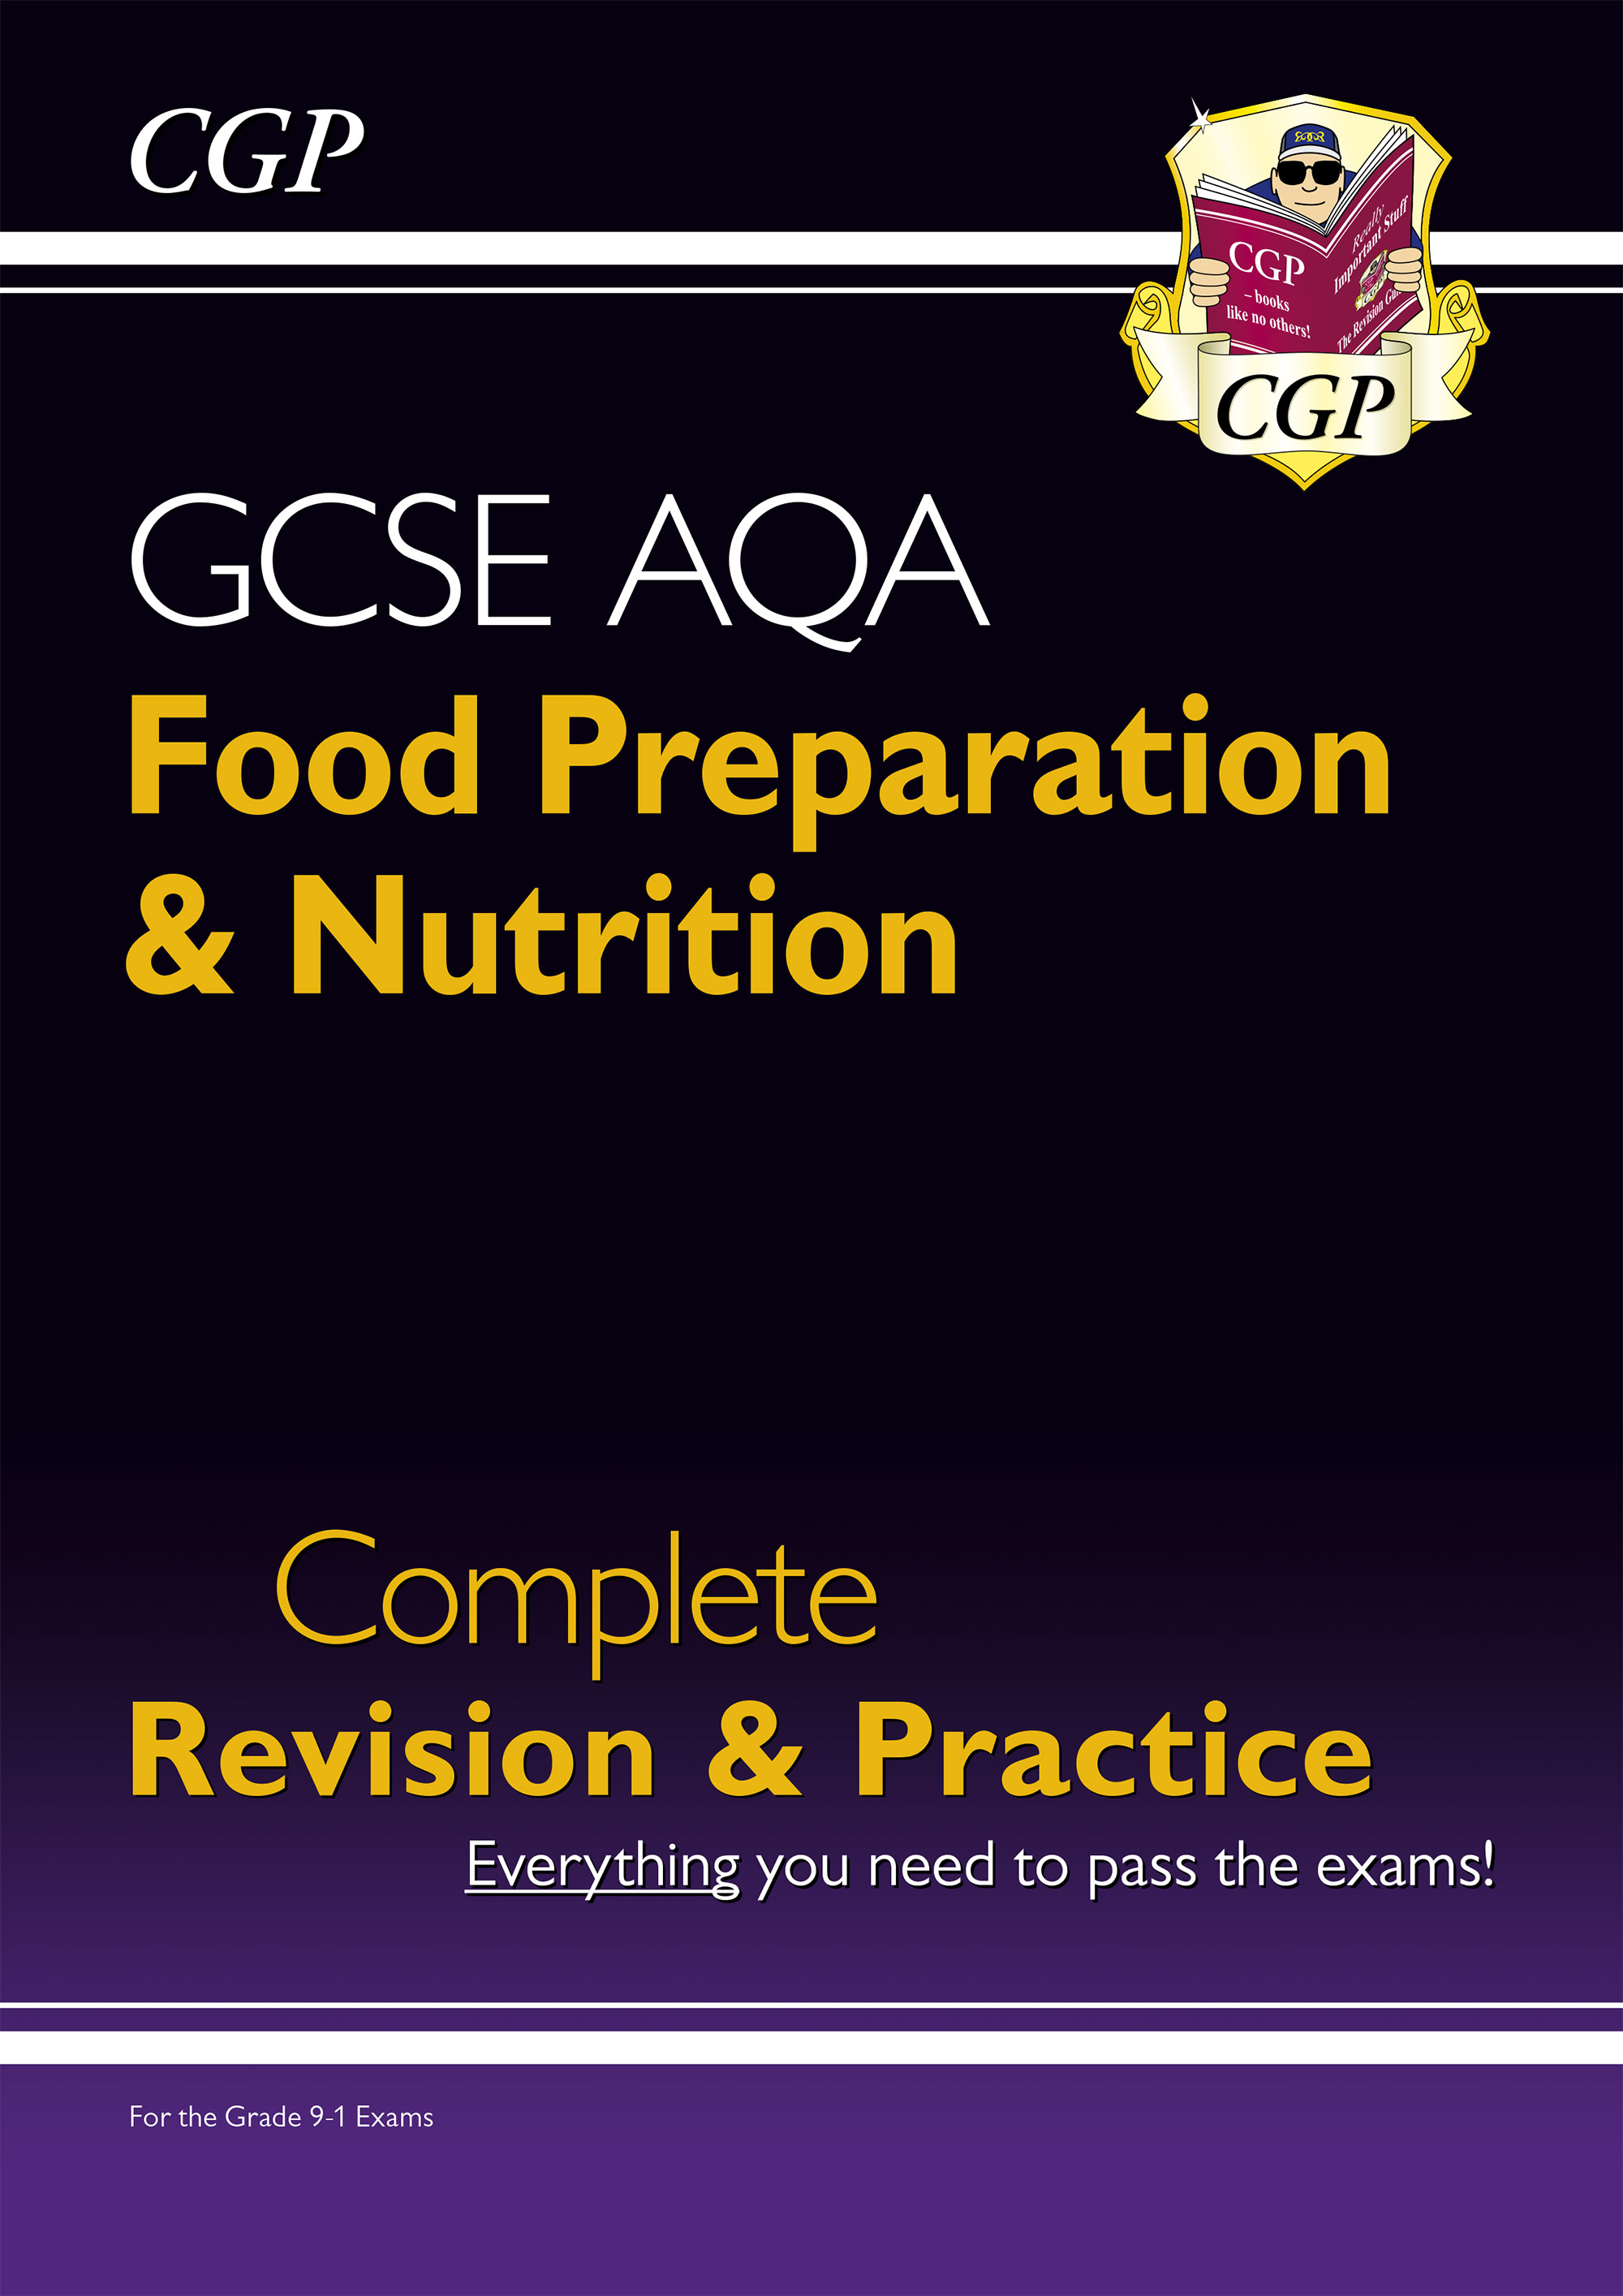 FNAS41D - New 9-1 GCSE Food Preparation & Nutrition AQA Complete Revision & Practice Online Edition